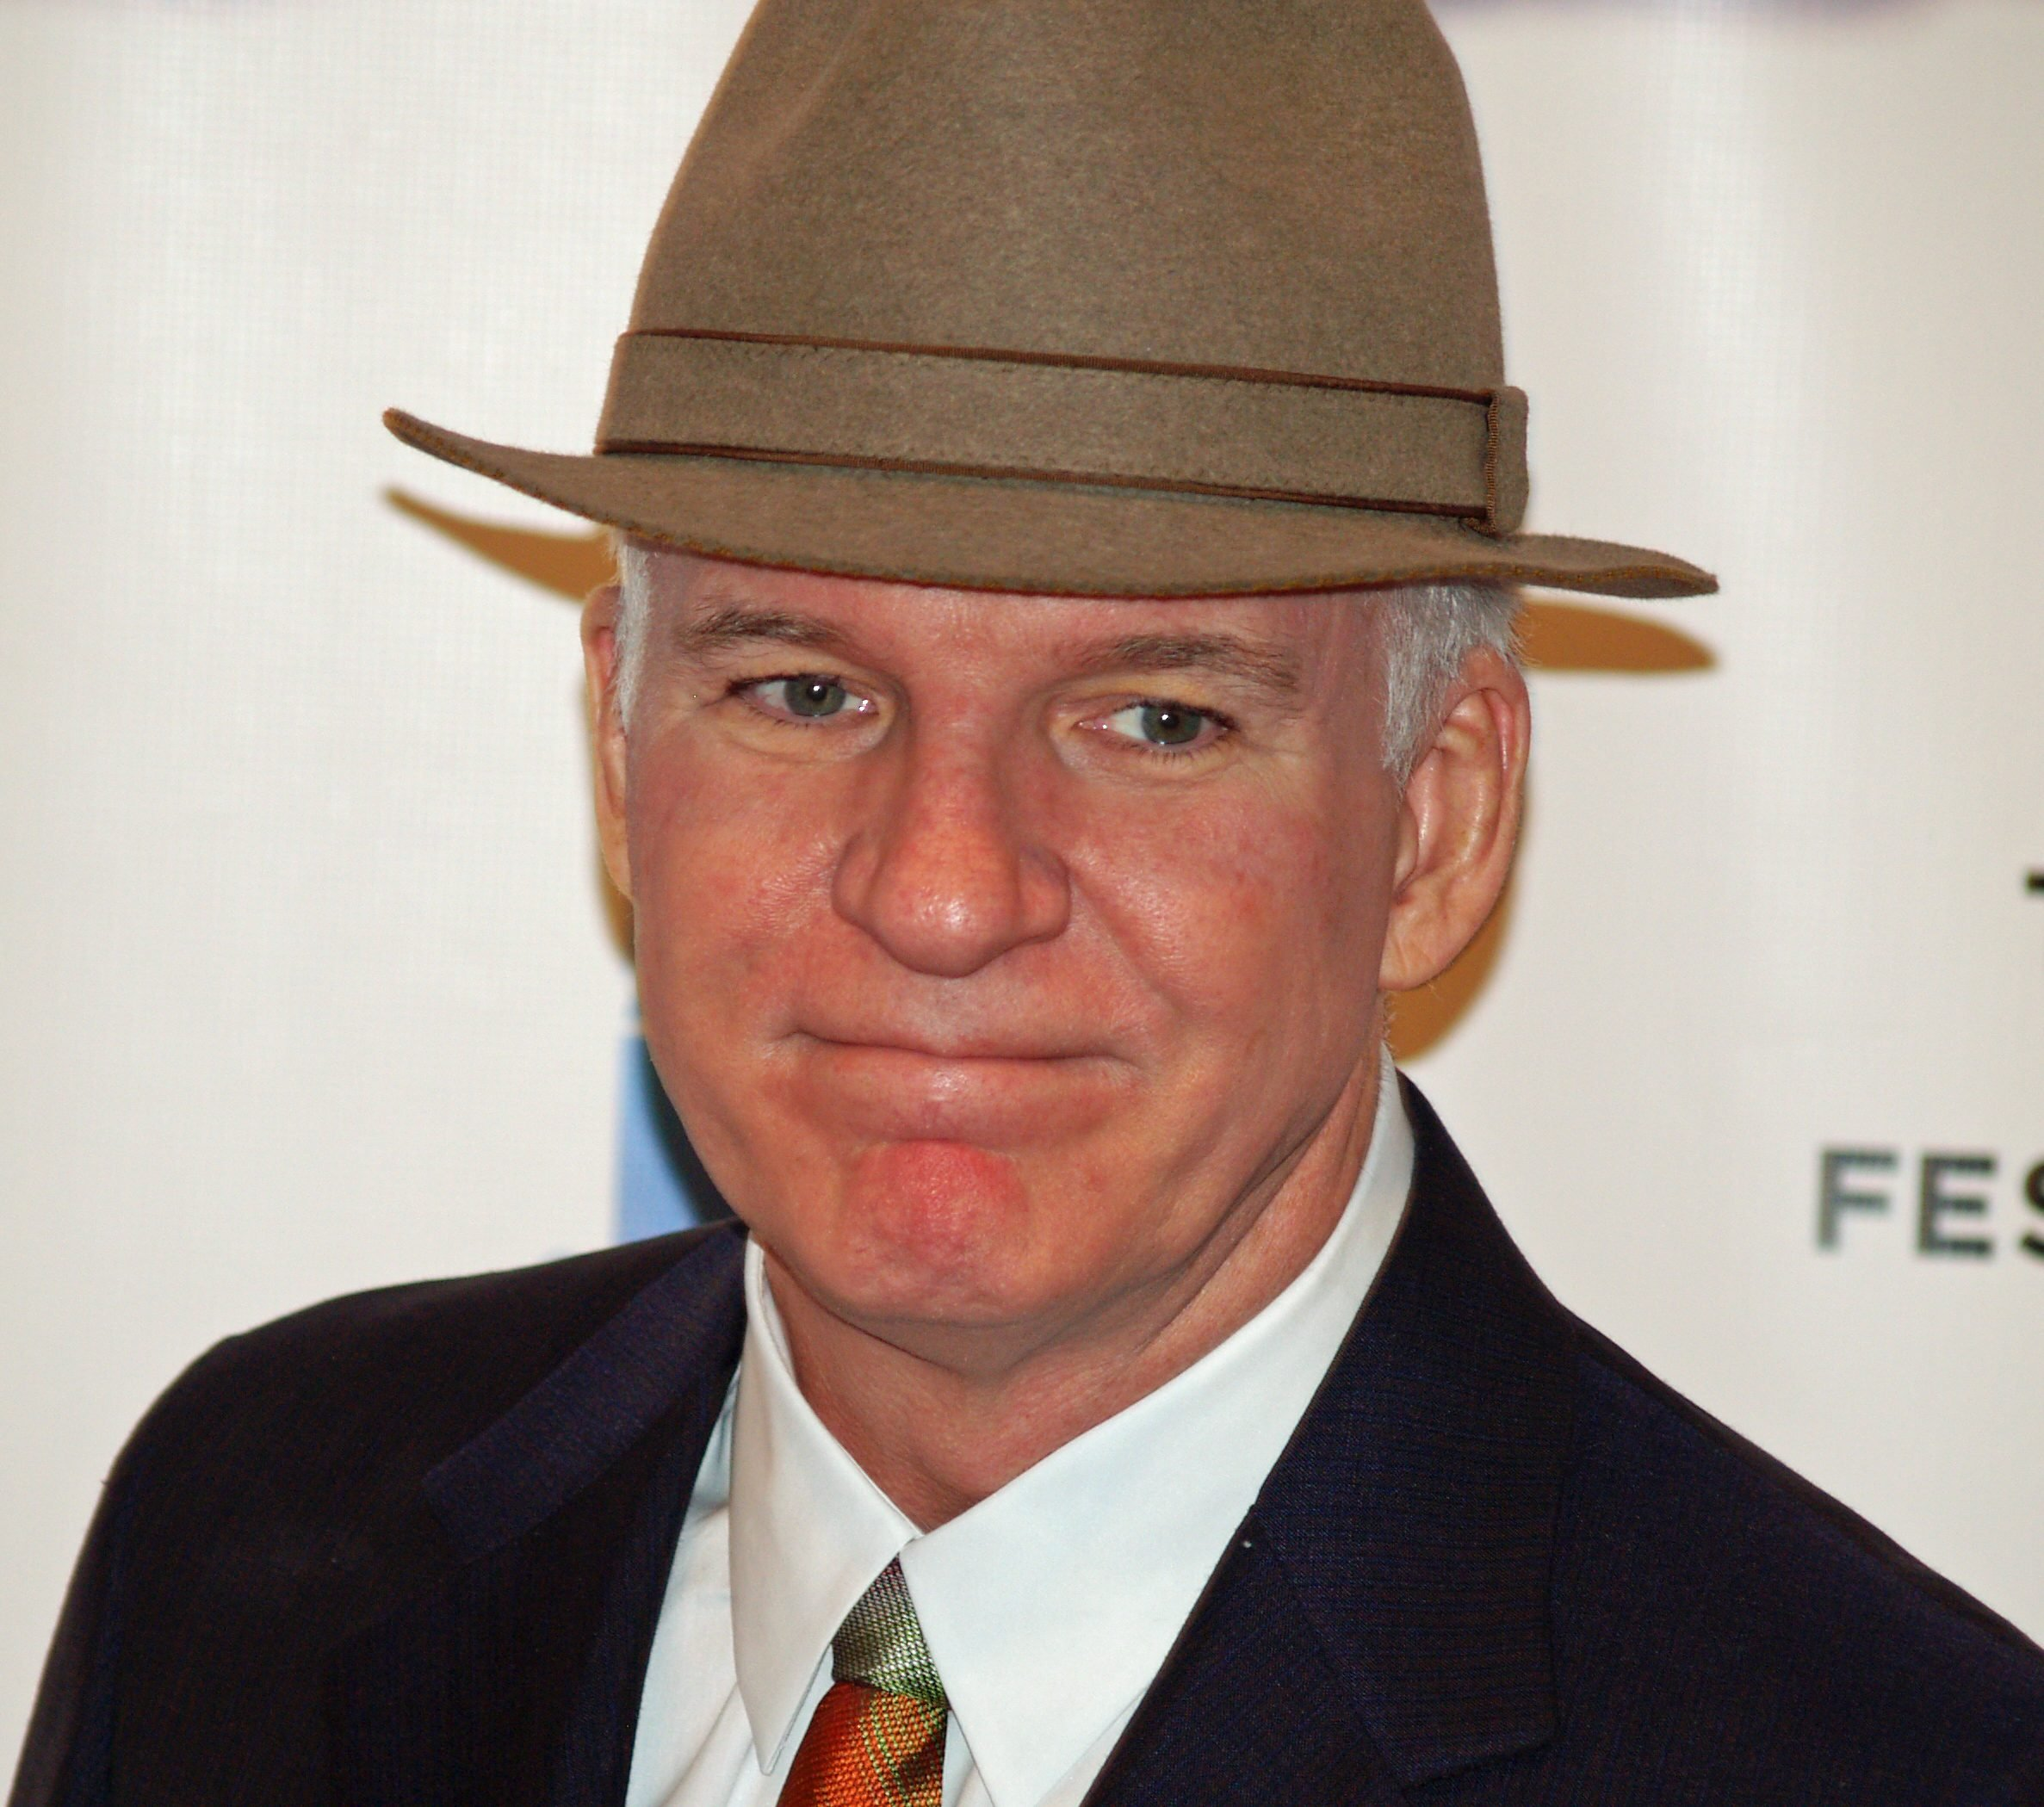 steve martin e1628858831733 20 Things You Didn't Know About Steve Martin